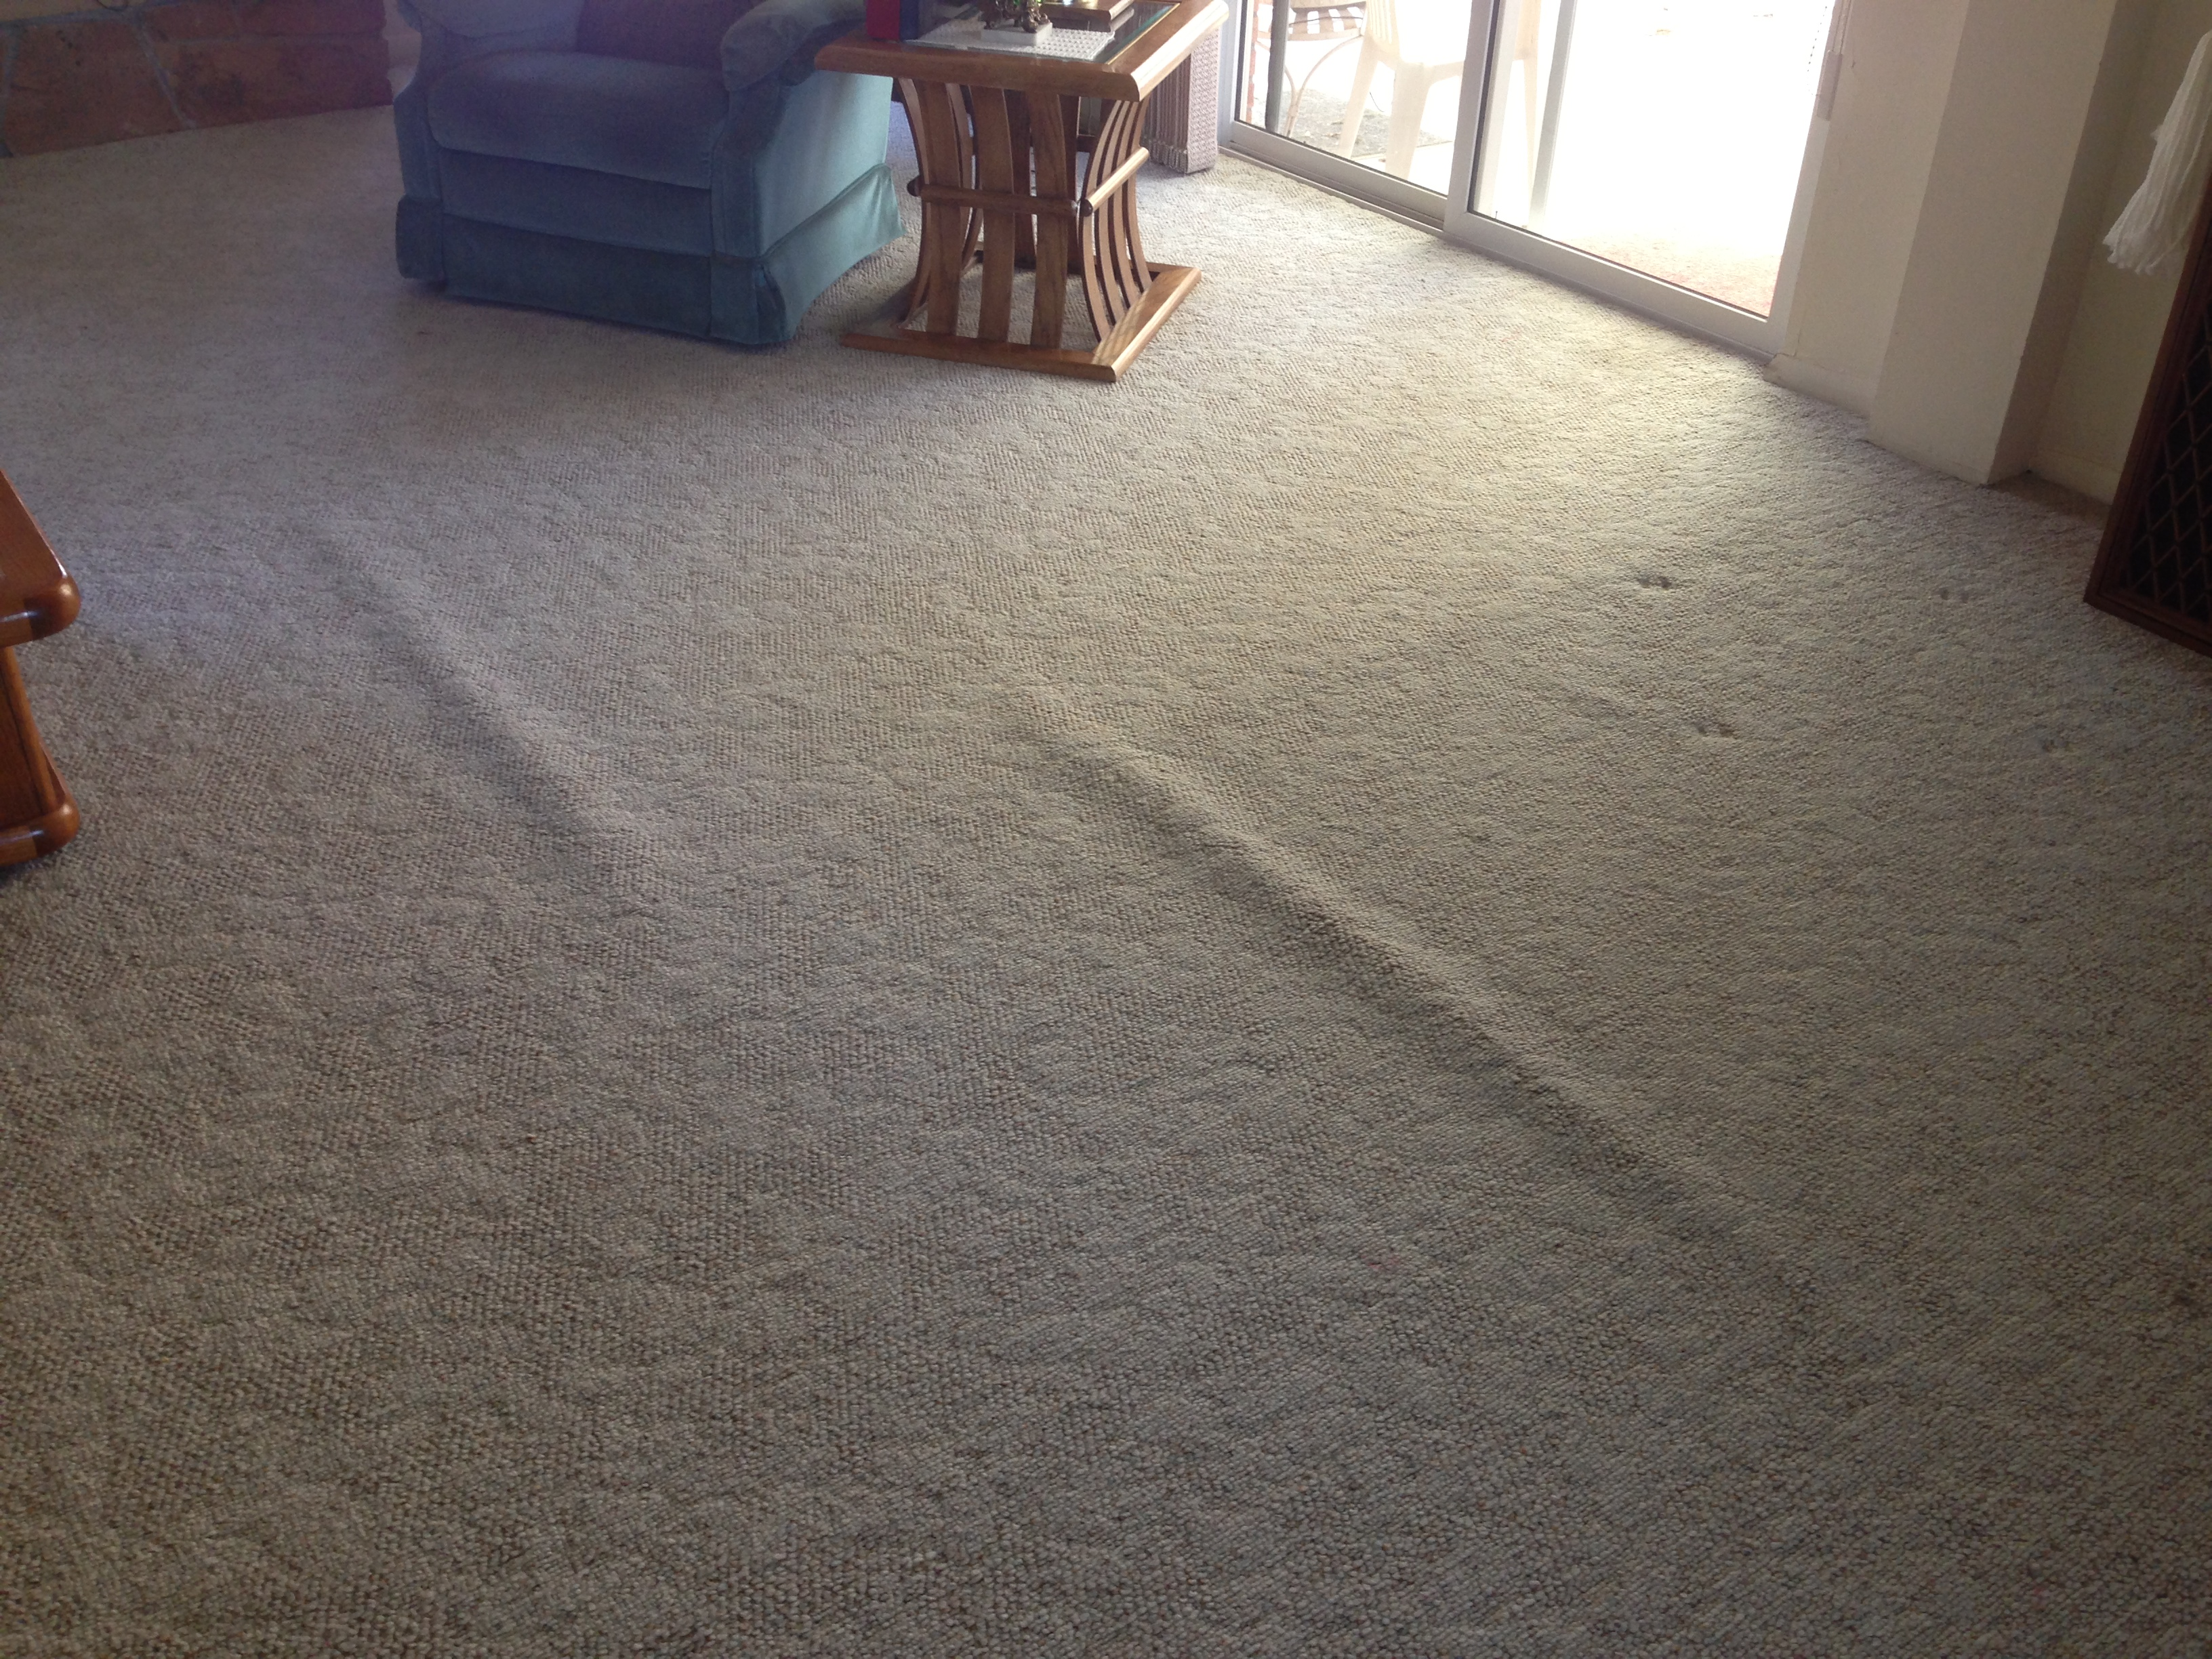 Chem Dry Of The Southwest Durango Carpet Cleaning Services